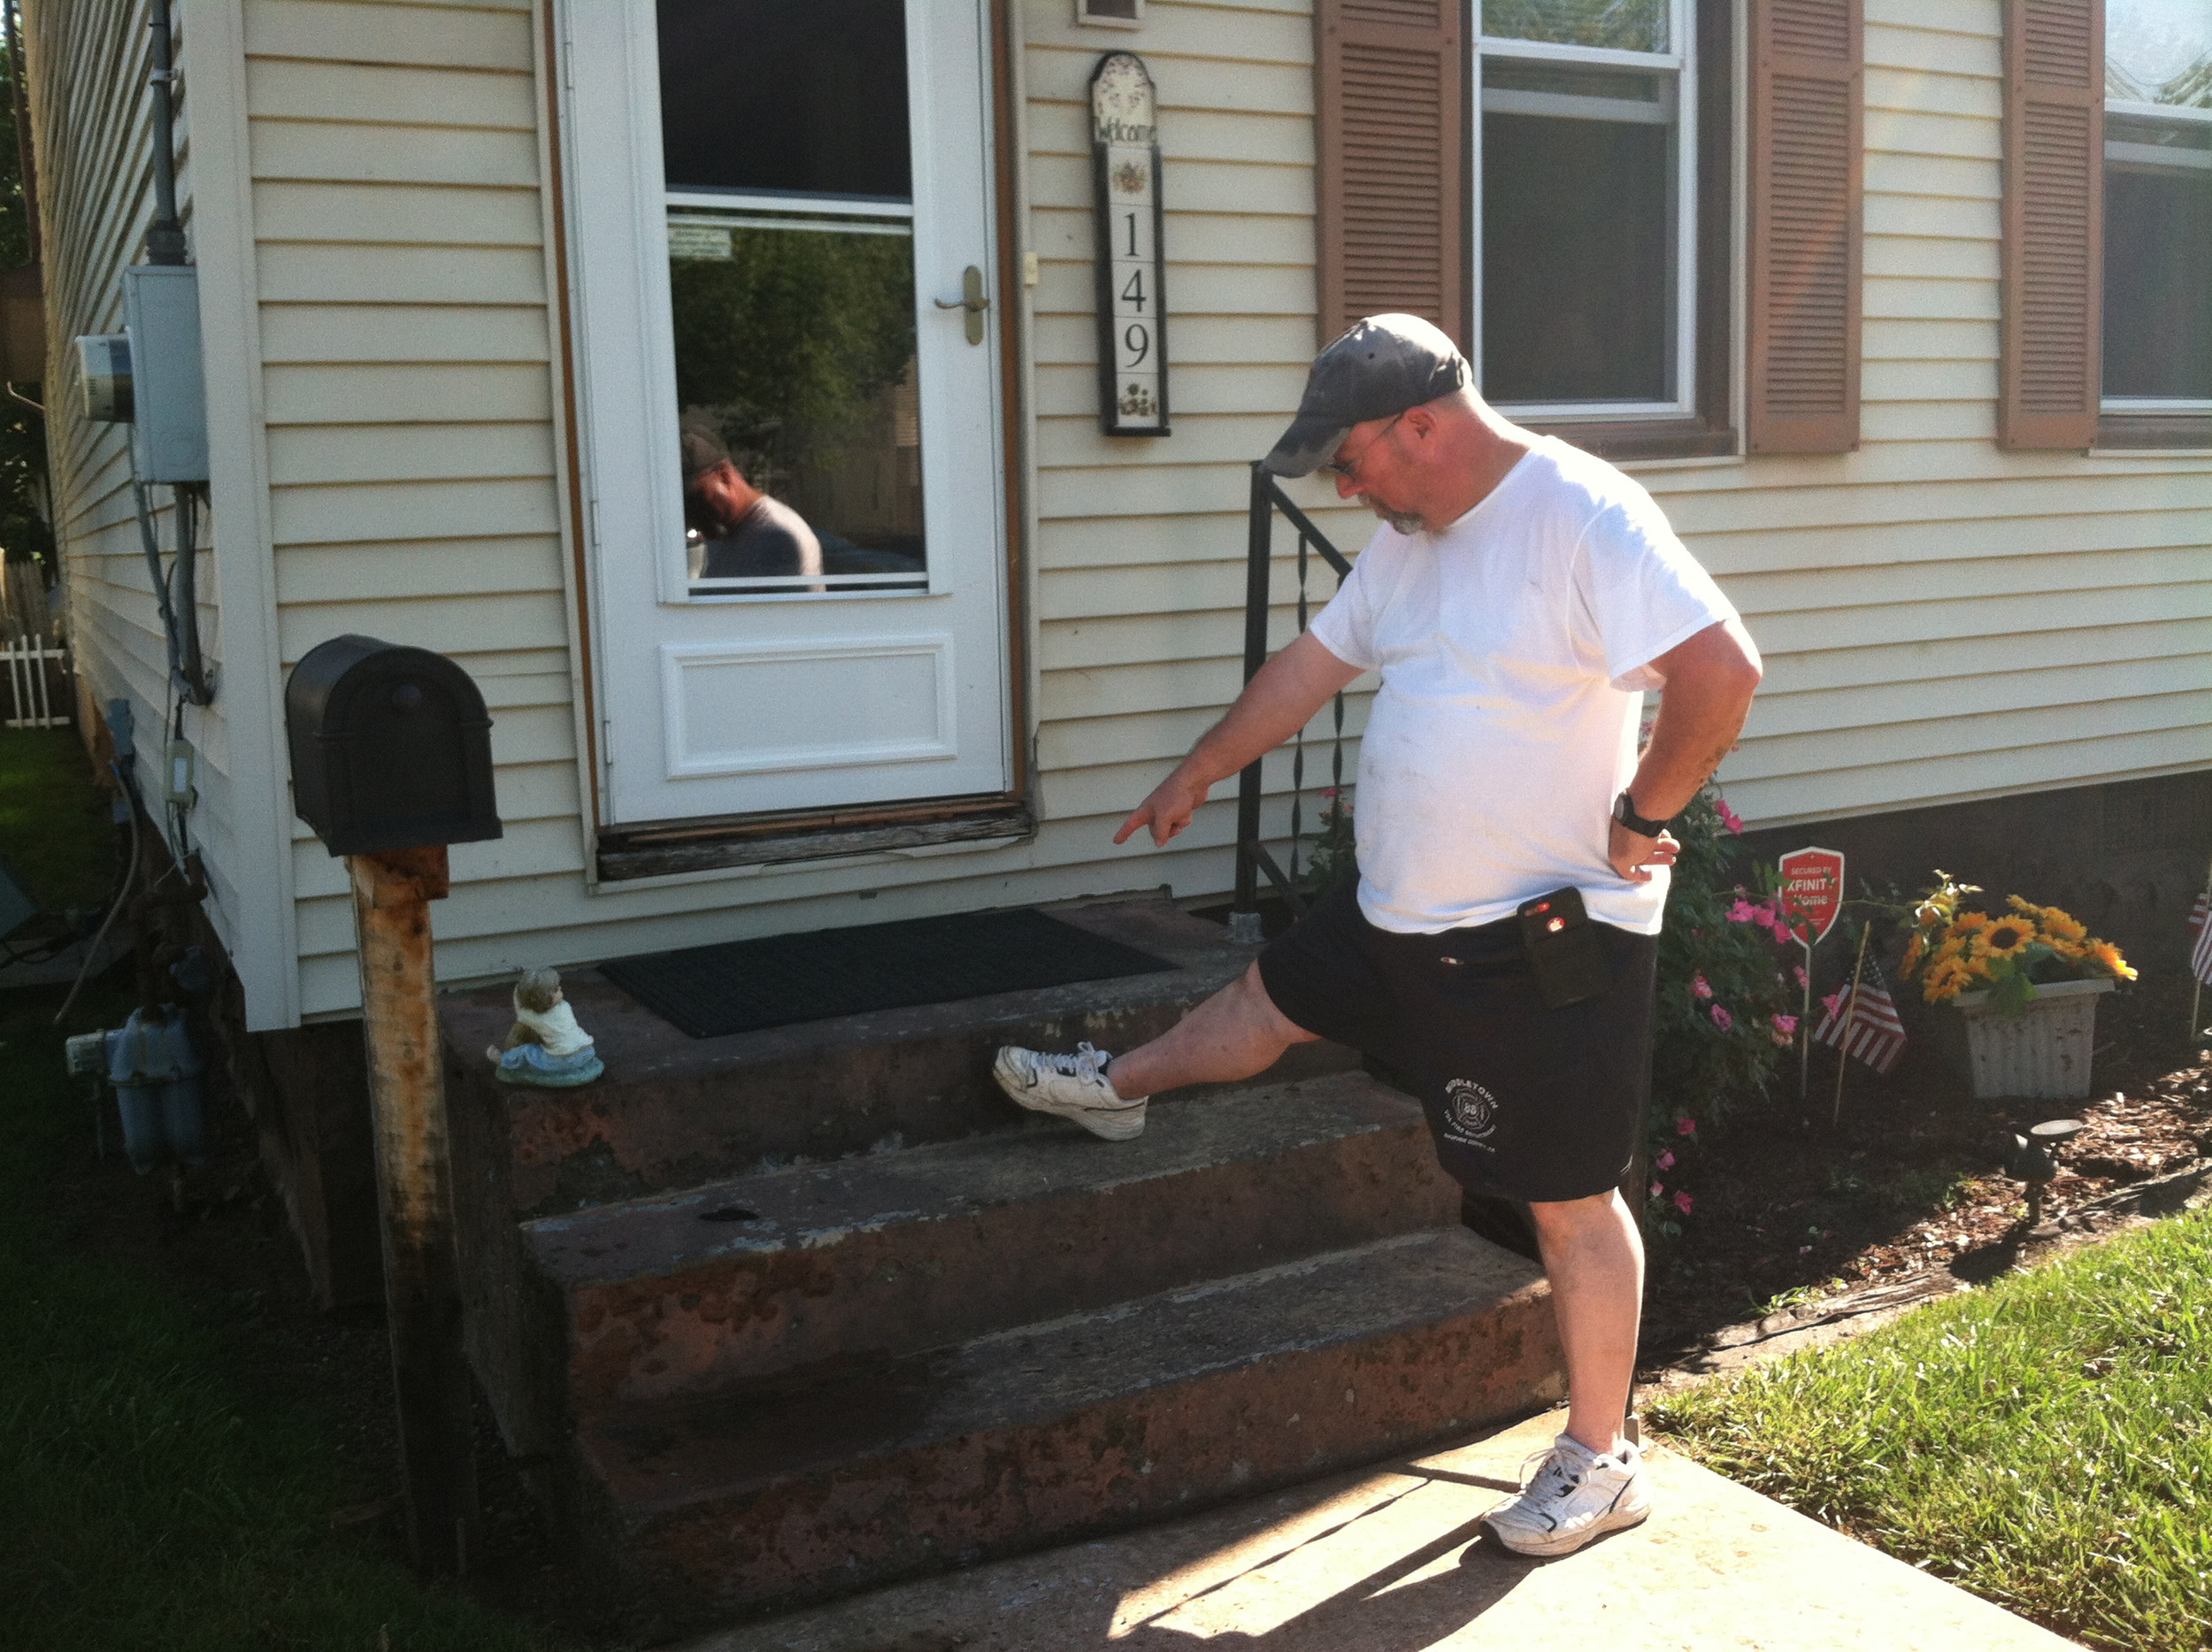 Ken Whitebread points to how high the water got on the steps in front of his house on Market Street in Middletown.